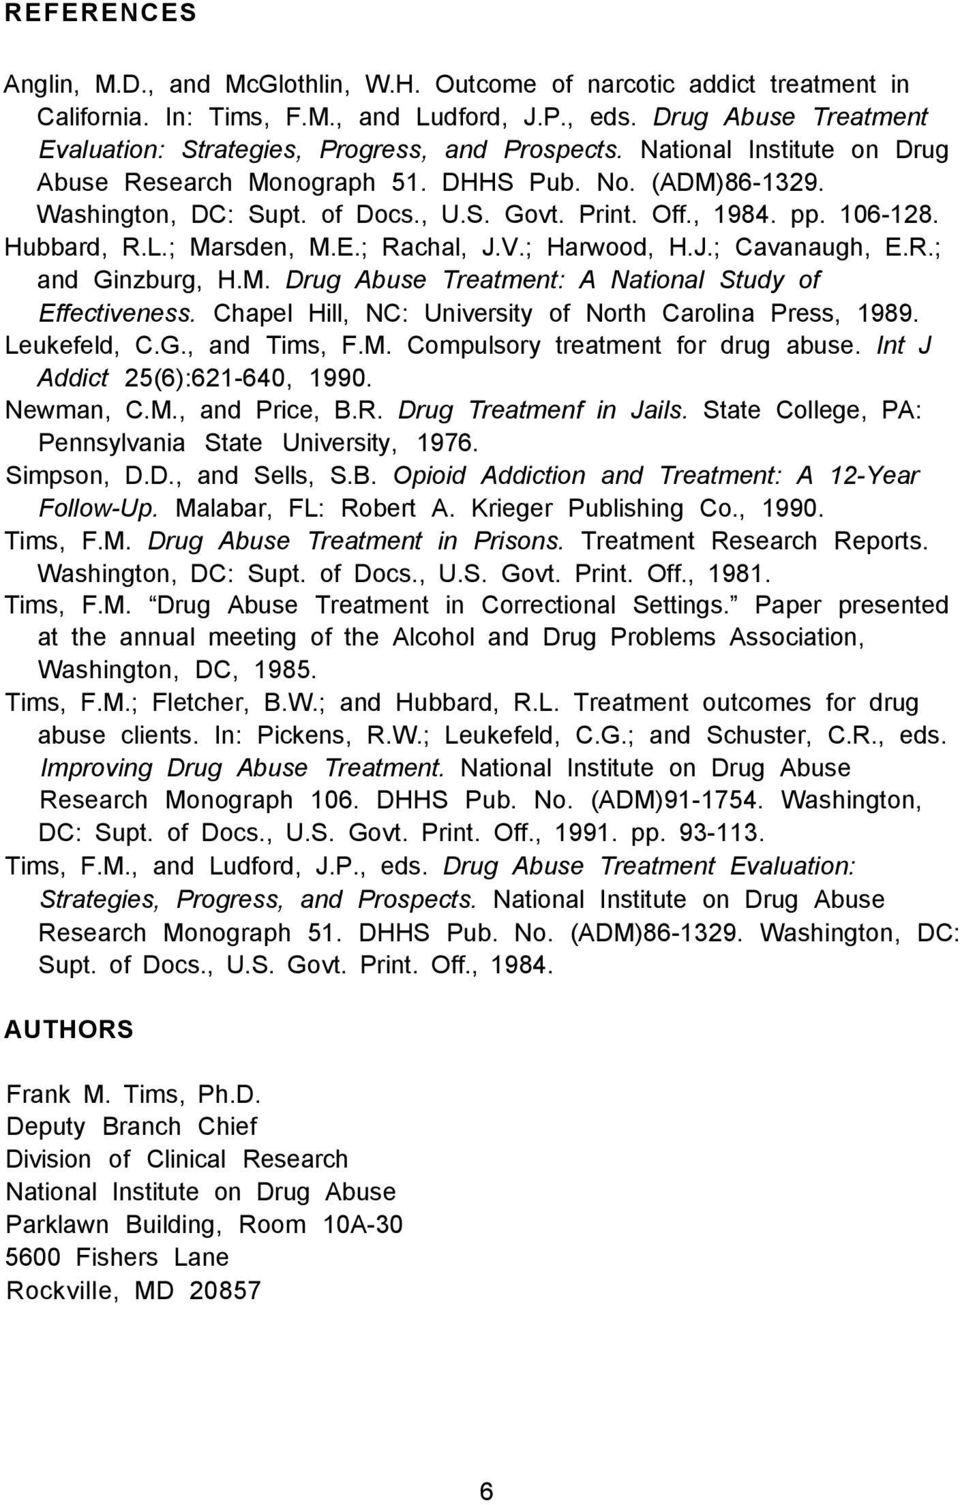 Print. Off., 1984. pp. 106-128. Hubbard, R.L.; Marsden, M.E.; Rachal, J.V.; Harwood, H.J.; Cavanaugh, E.R.; and Ginzburg, H.M. Drug Abuse Treatment: A National Study of Effectiveness.